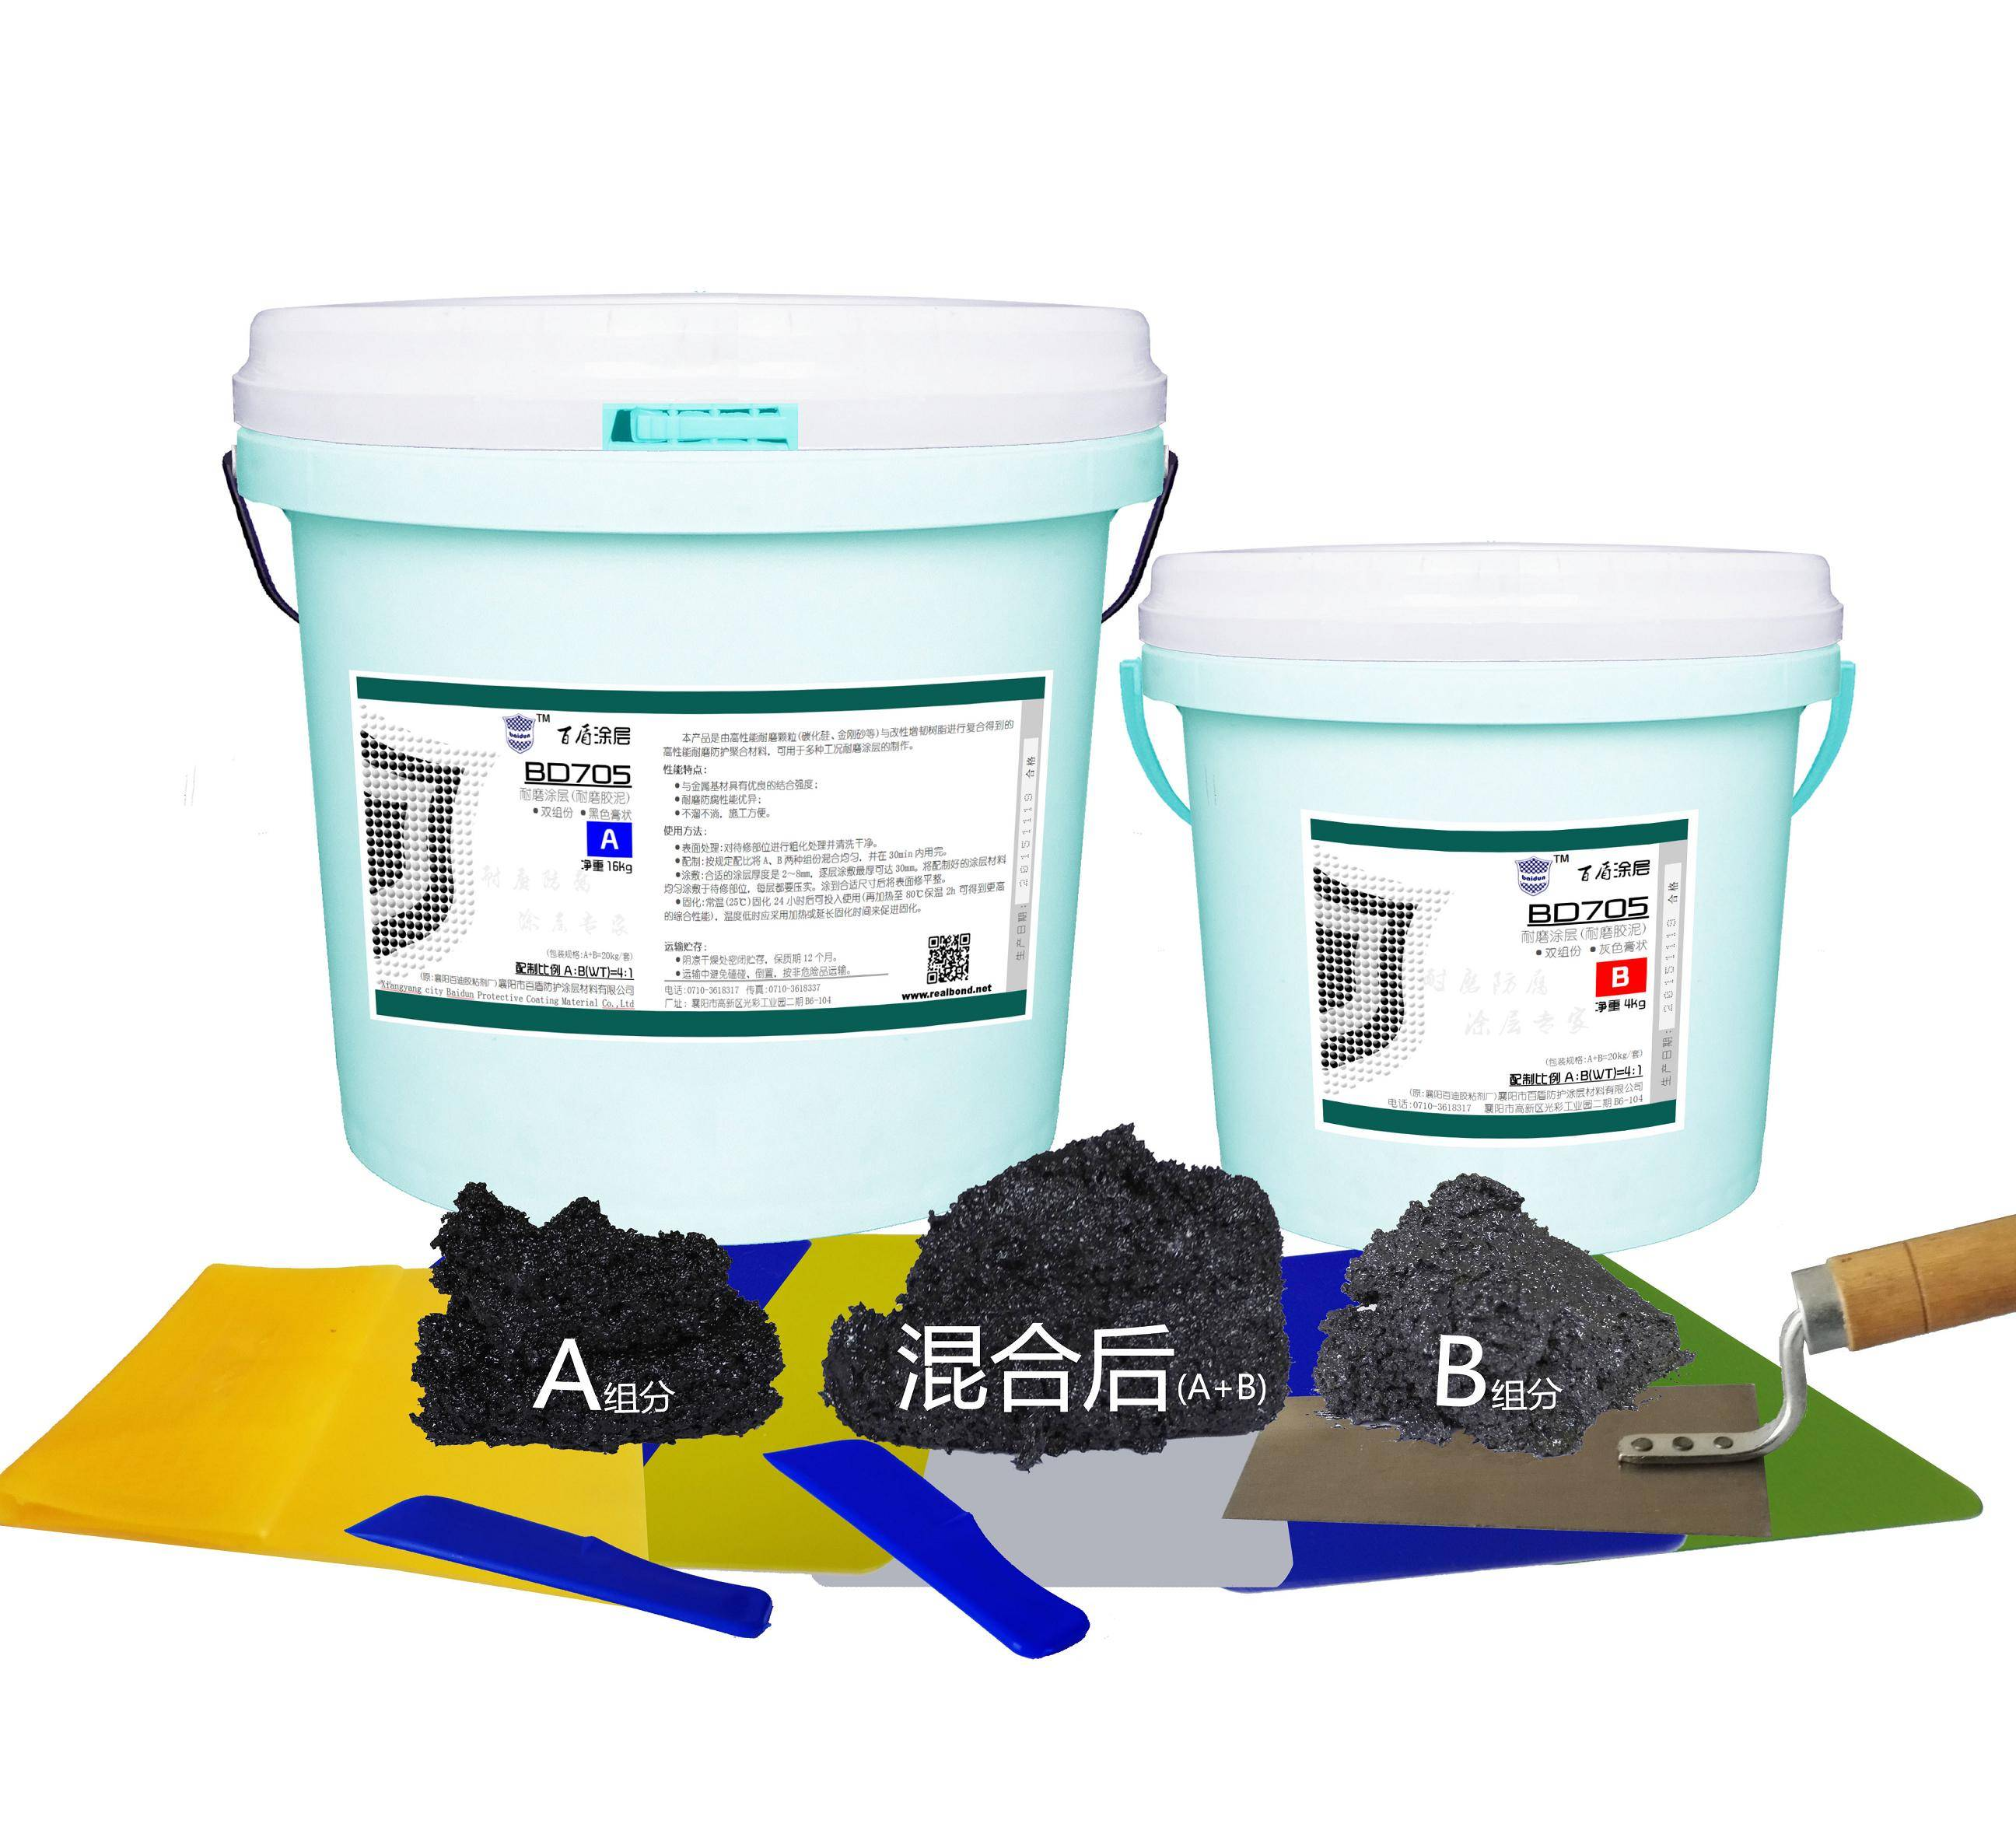 anti wear anti corrosion chemical resistant coatings